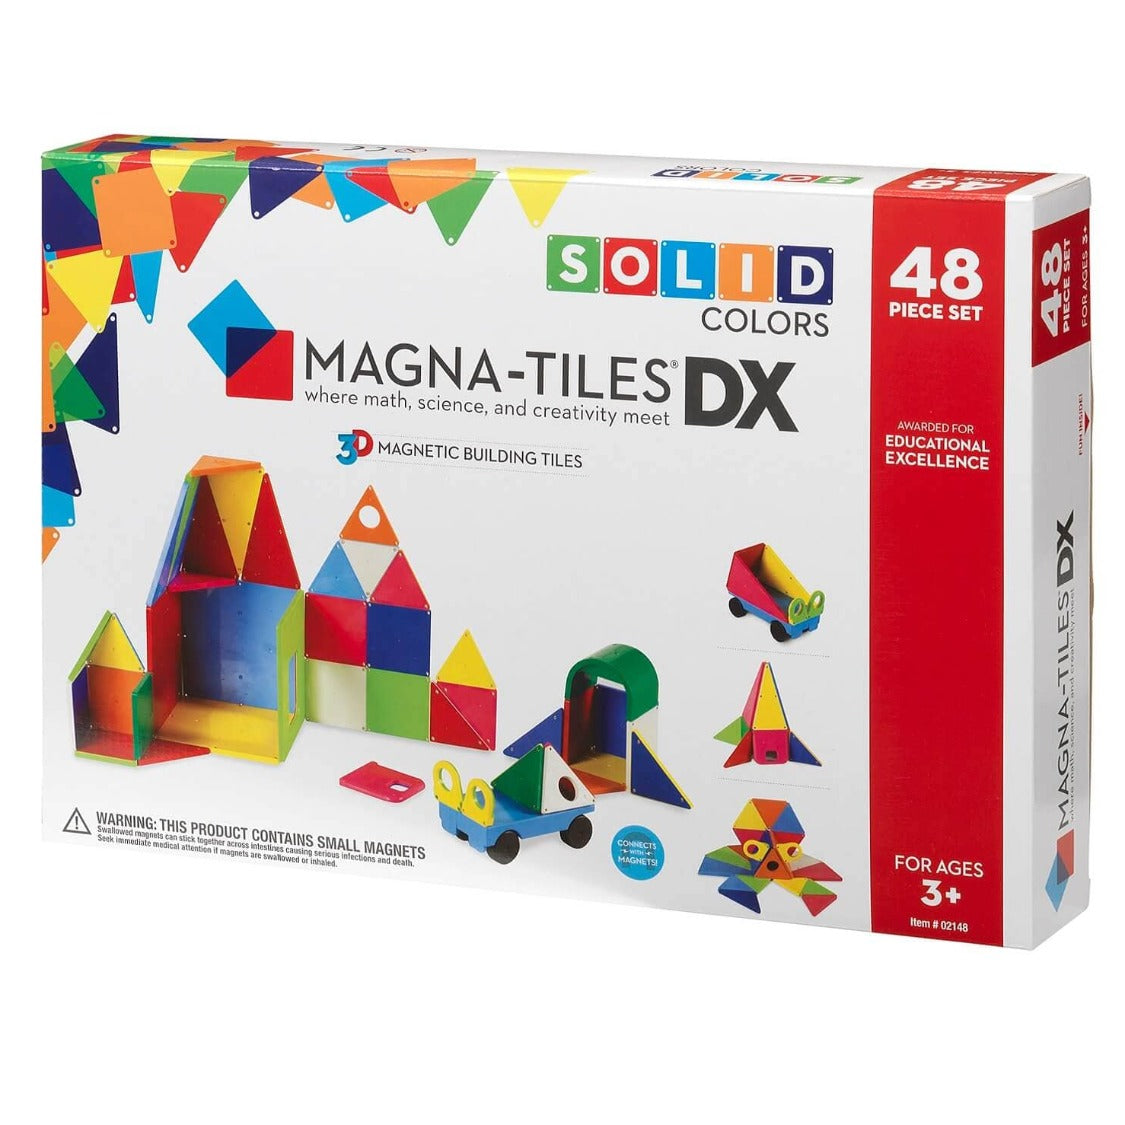 Magna Tiles Solid Colors 48Pc Set